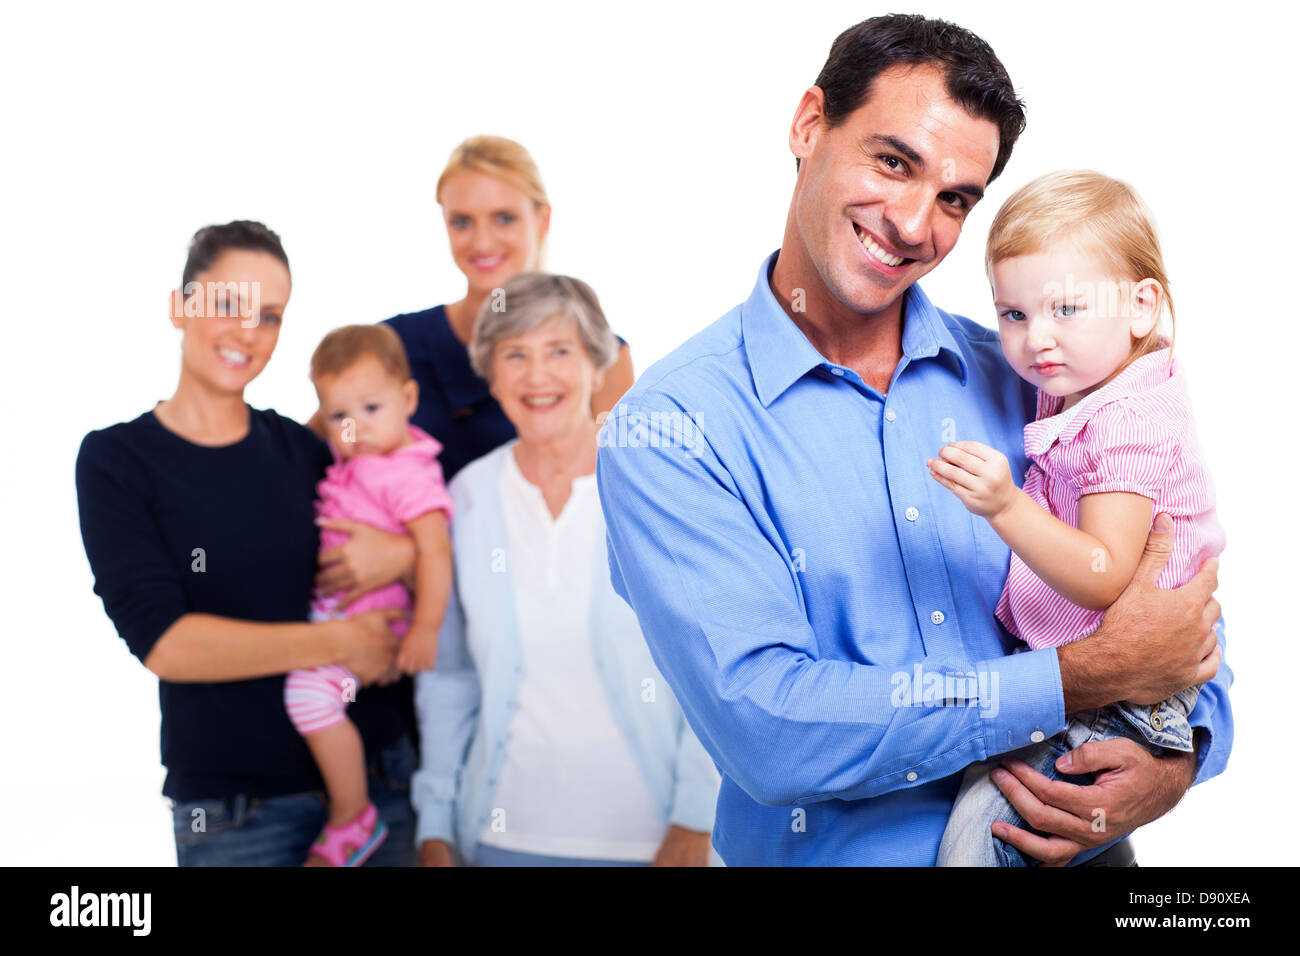 cheerful father holding his daughter with extended family on background - Stock Image